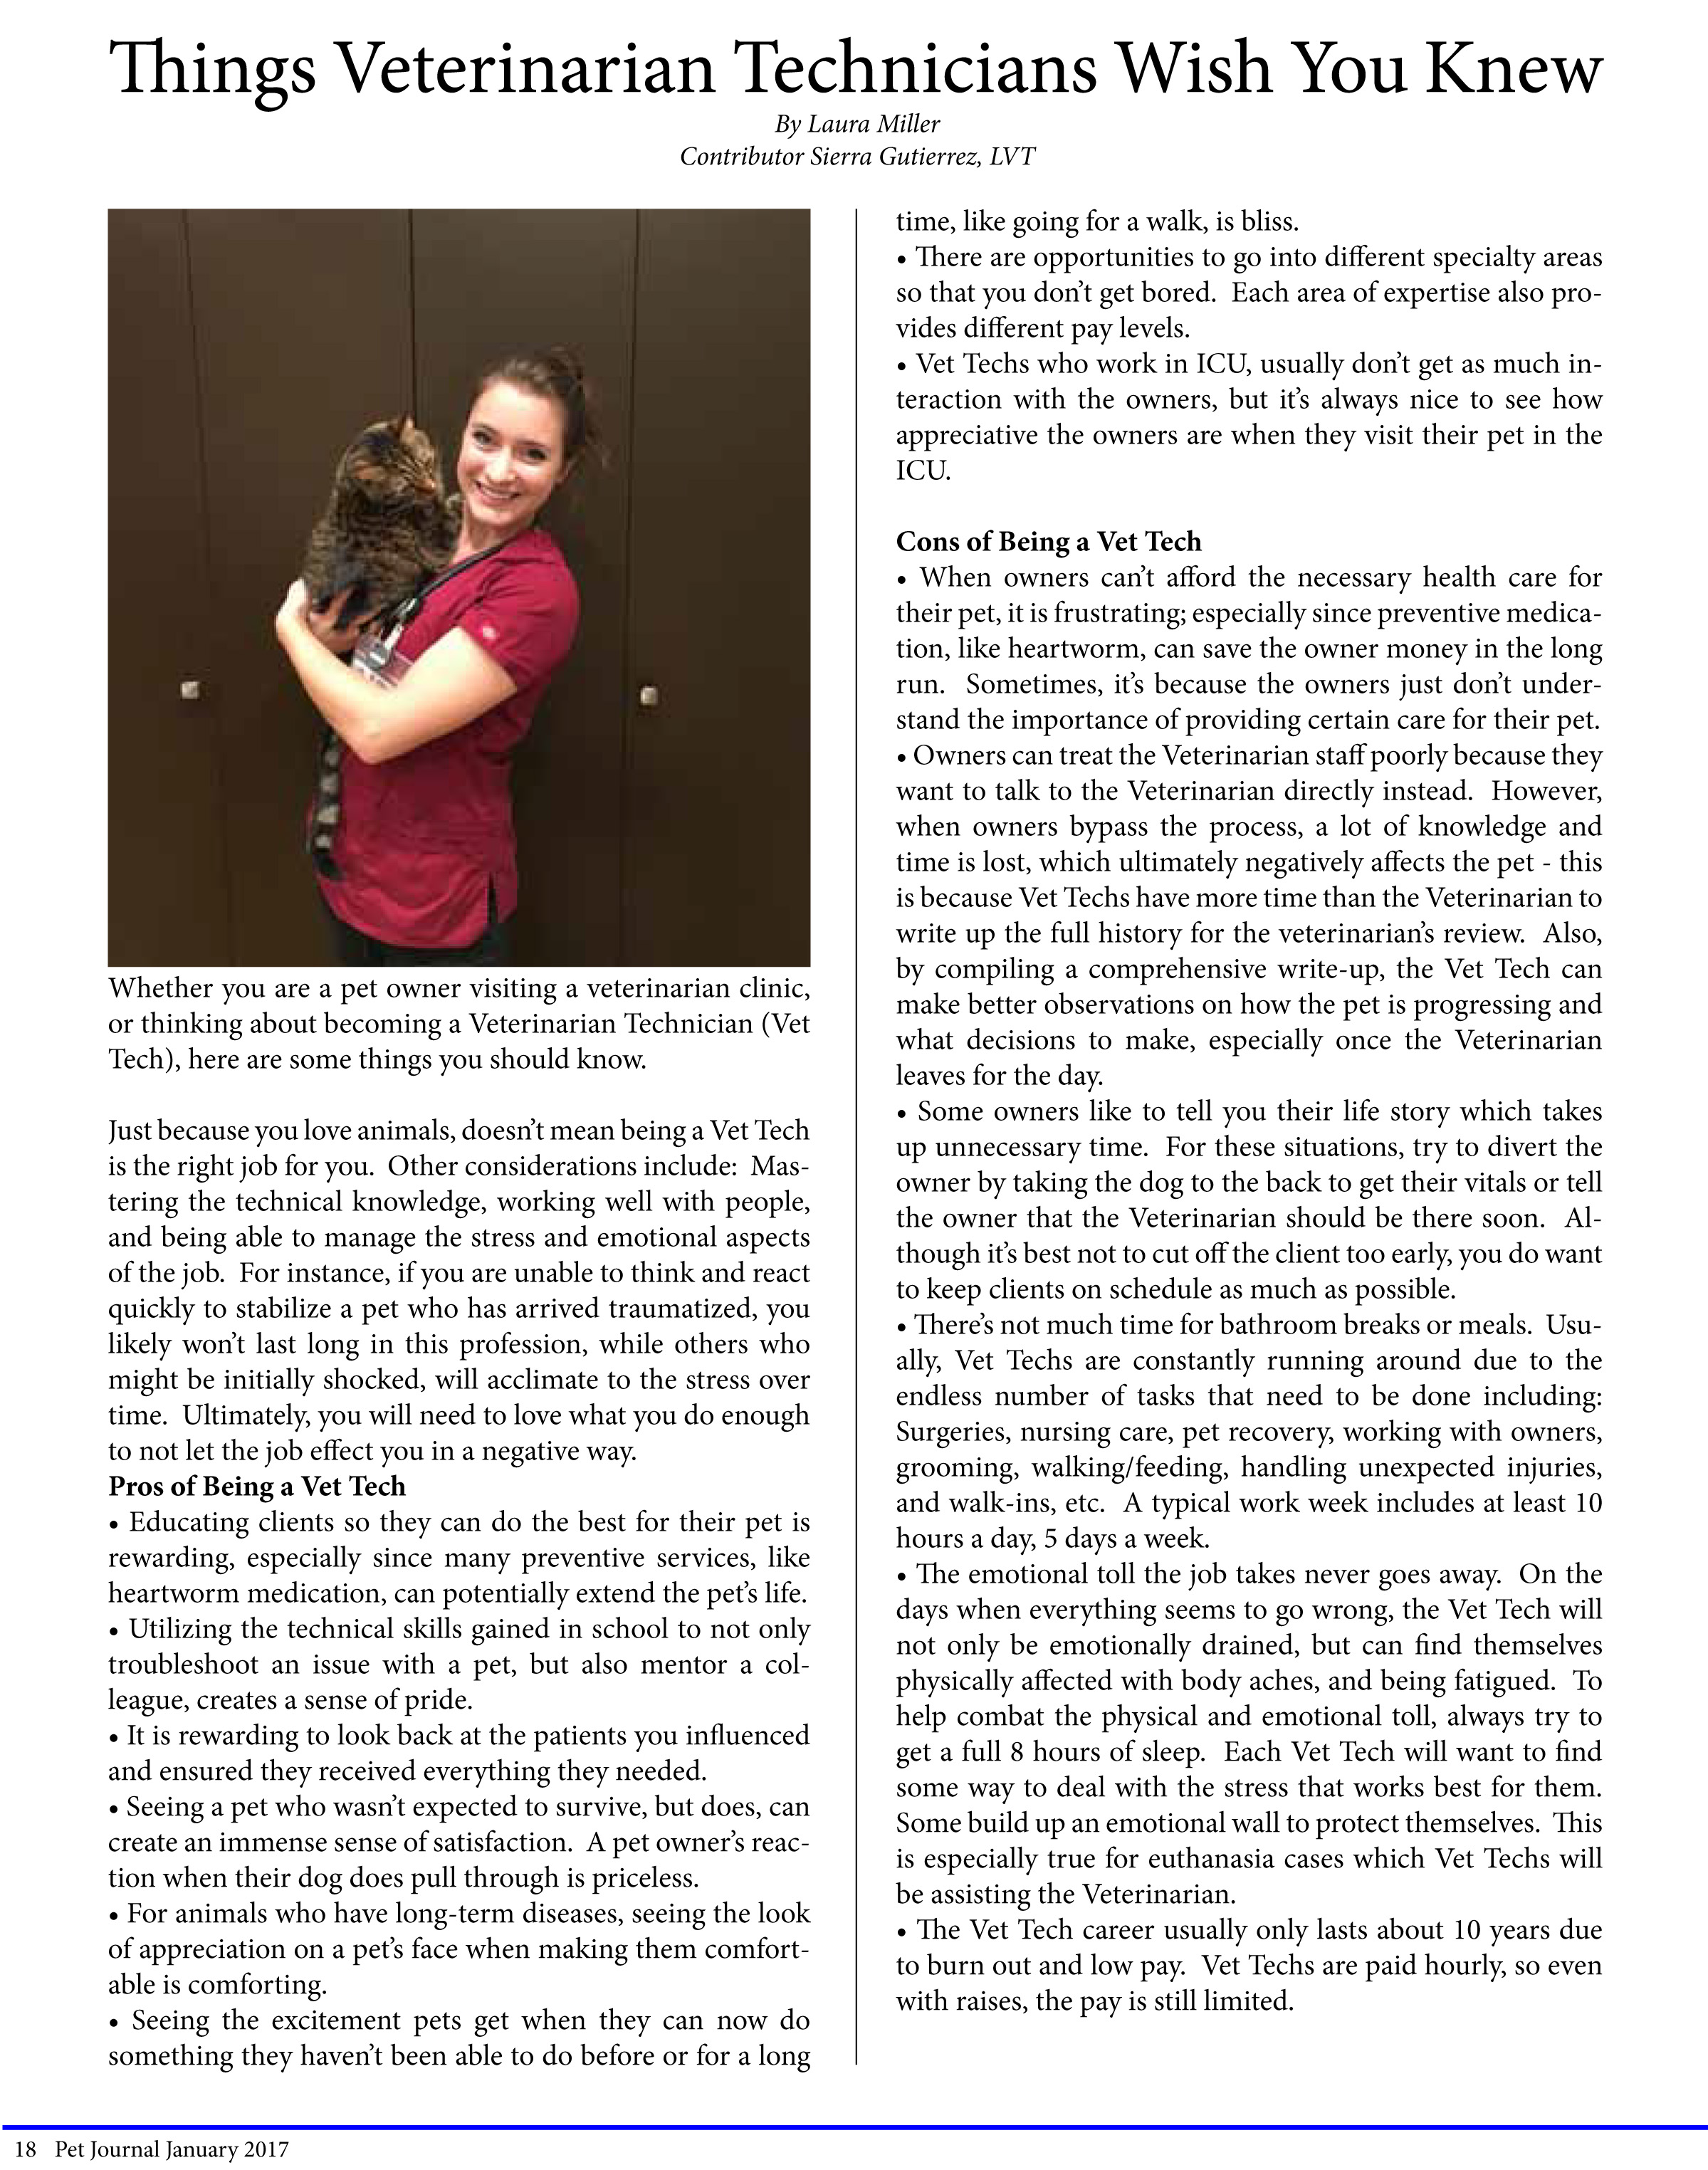 Pet Journal January 2017-20.jpg